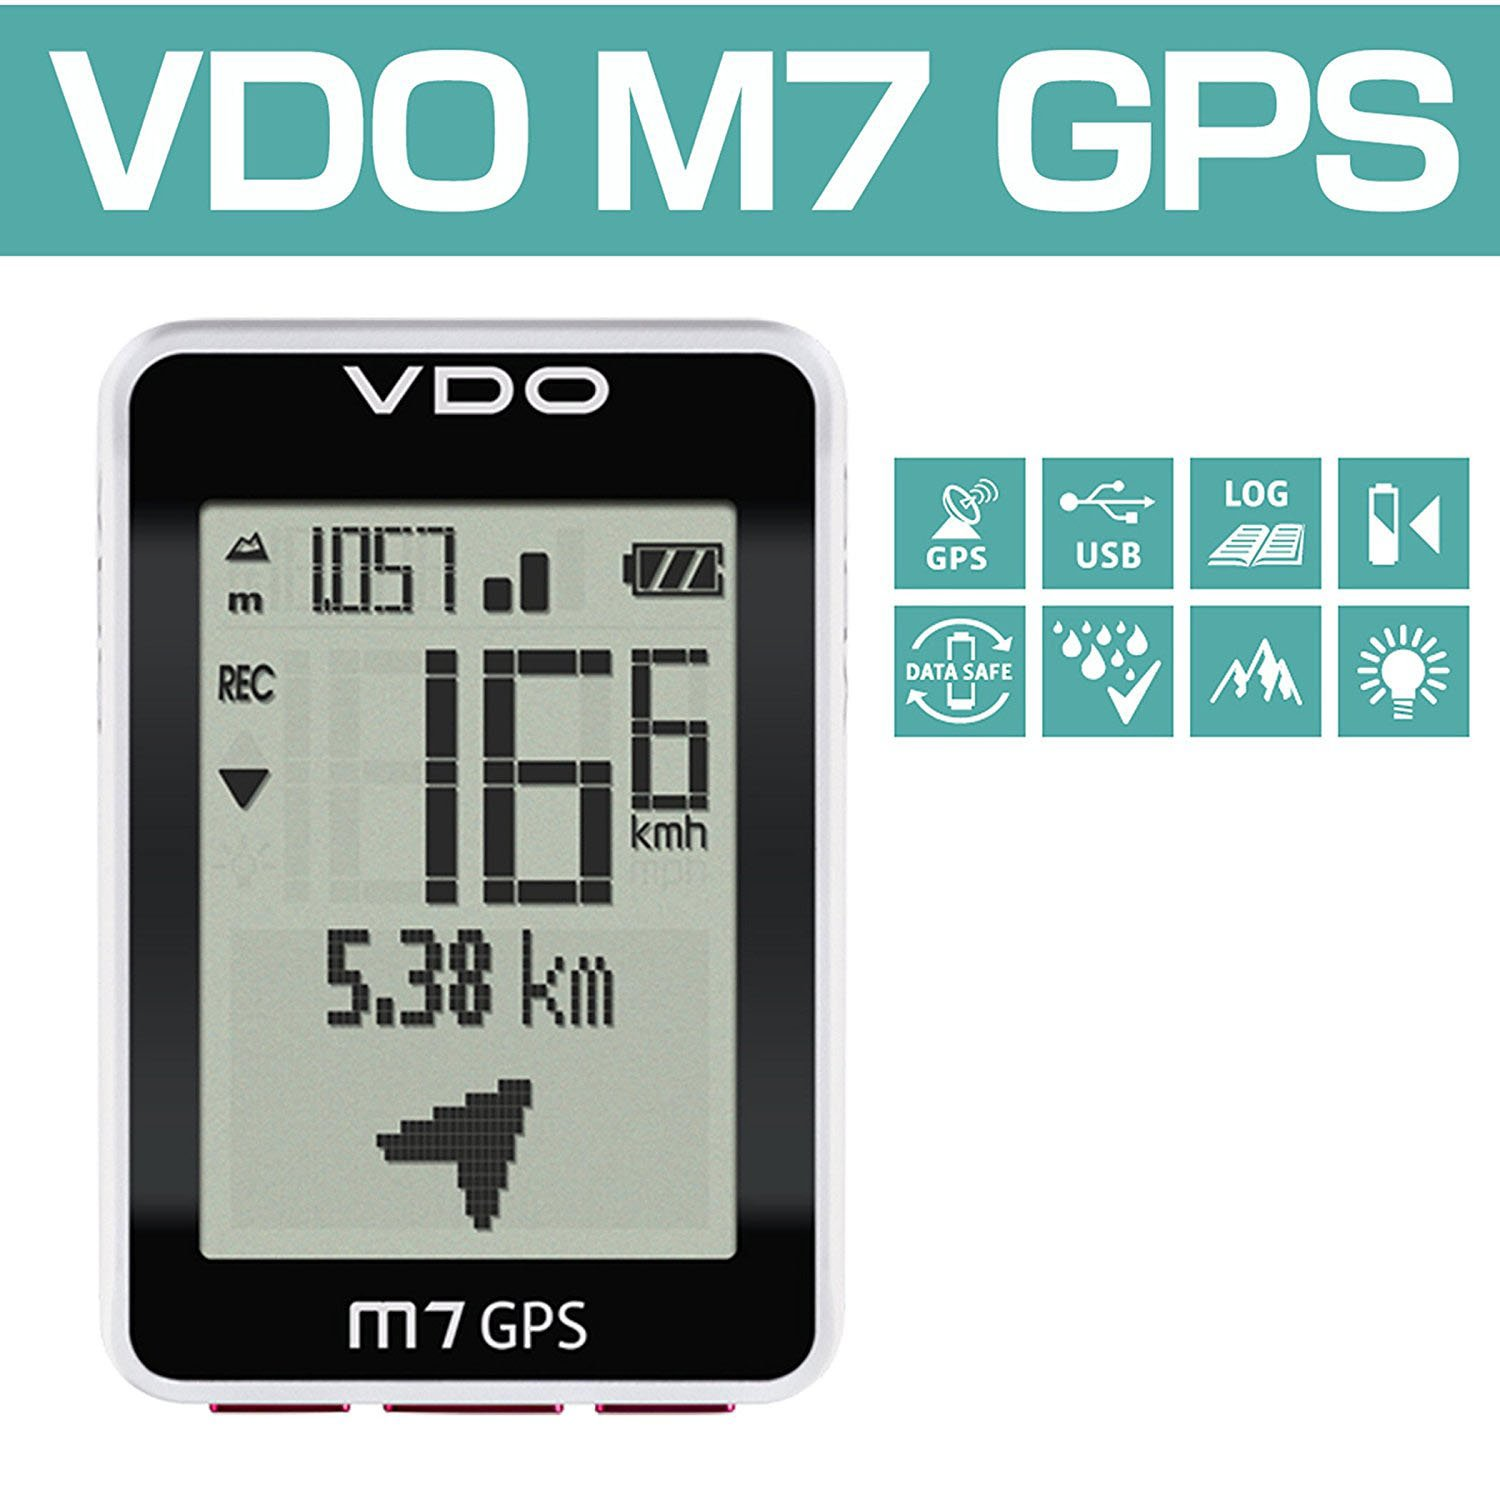 Vdo M7 Gps With Motion Sensor Digital Wireless Black Speedometers Speed Speedometer Cycle Bike Cyclocomputer Sports Outdoors